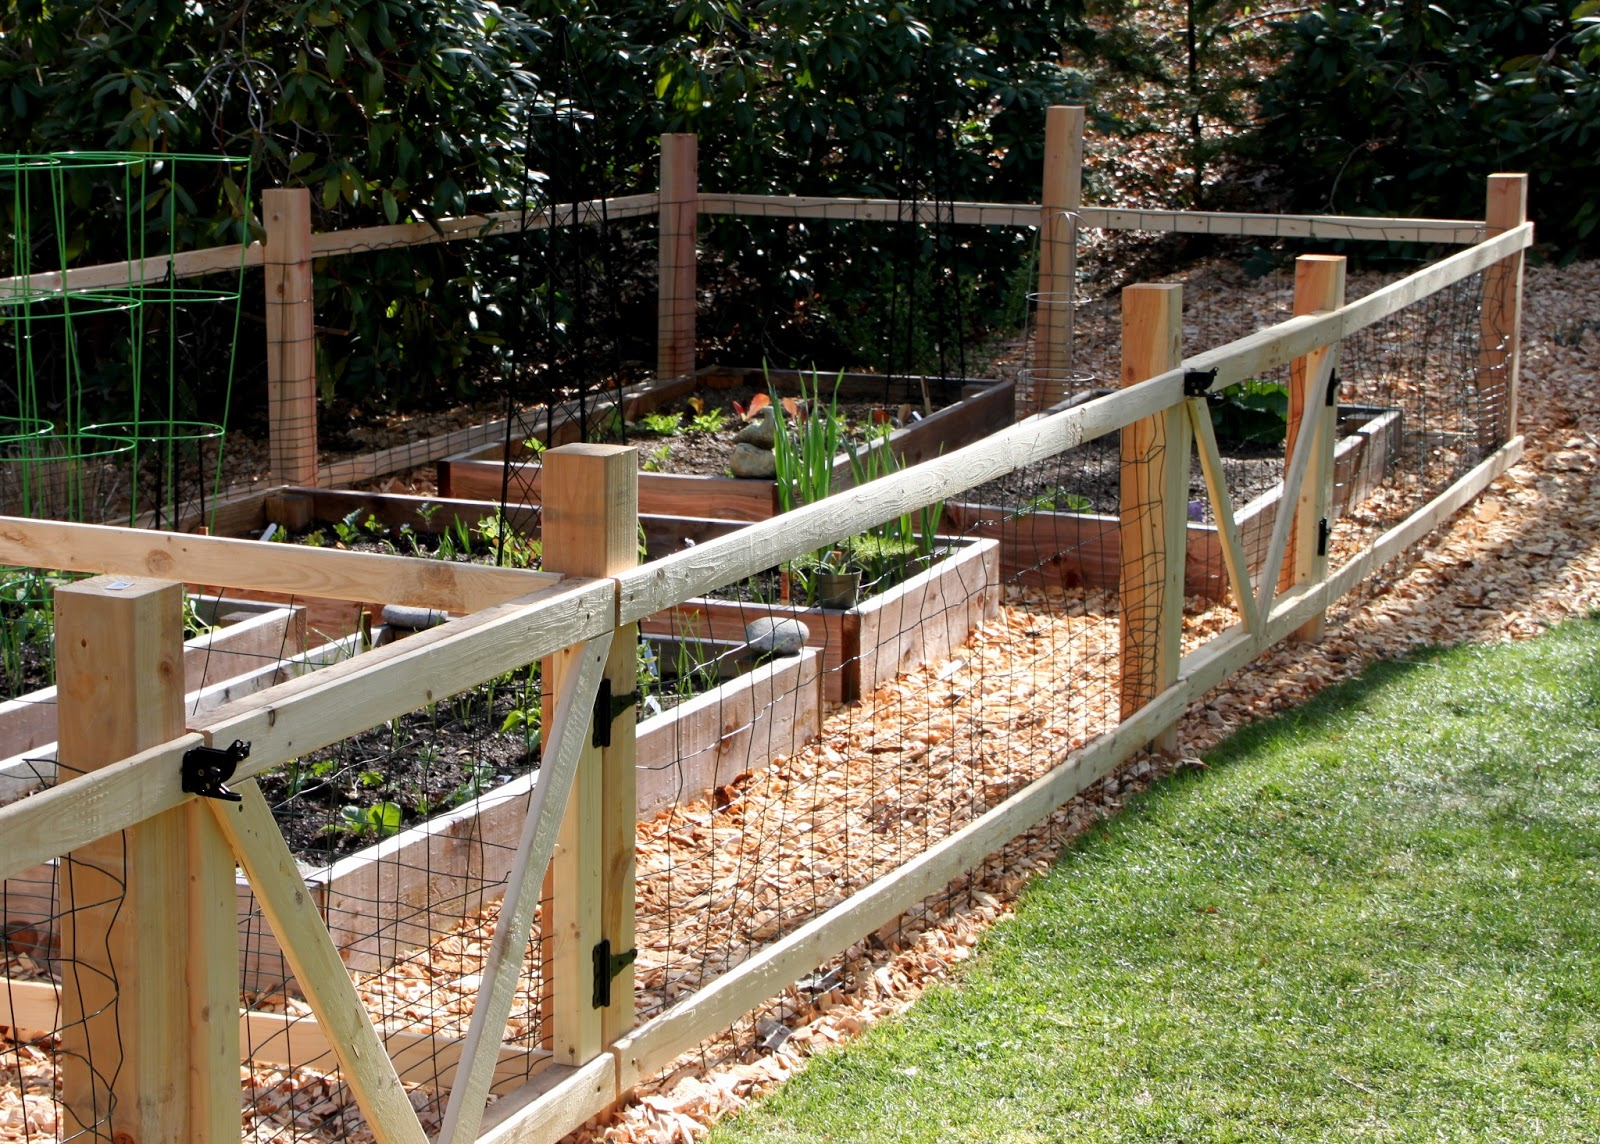 Tilly 39 s nest a simple garden fence Garden fence ideas